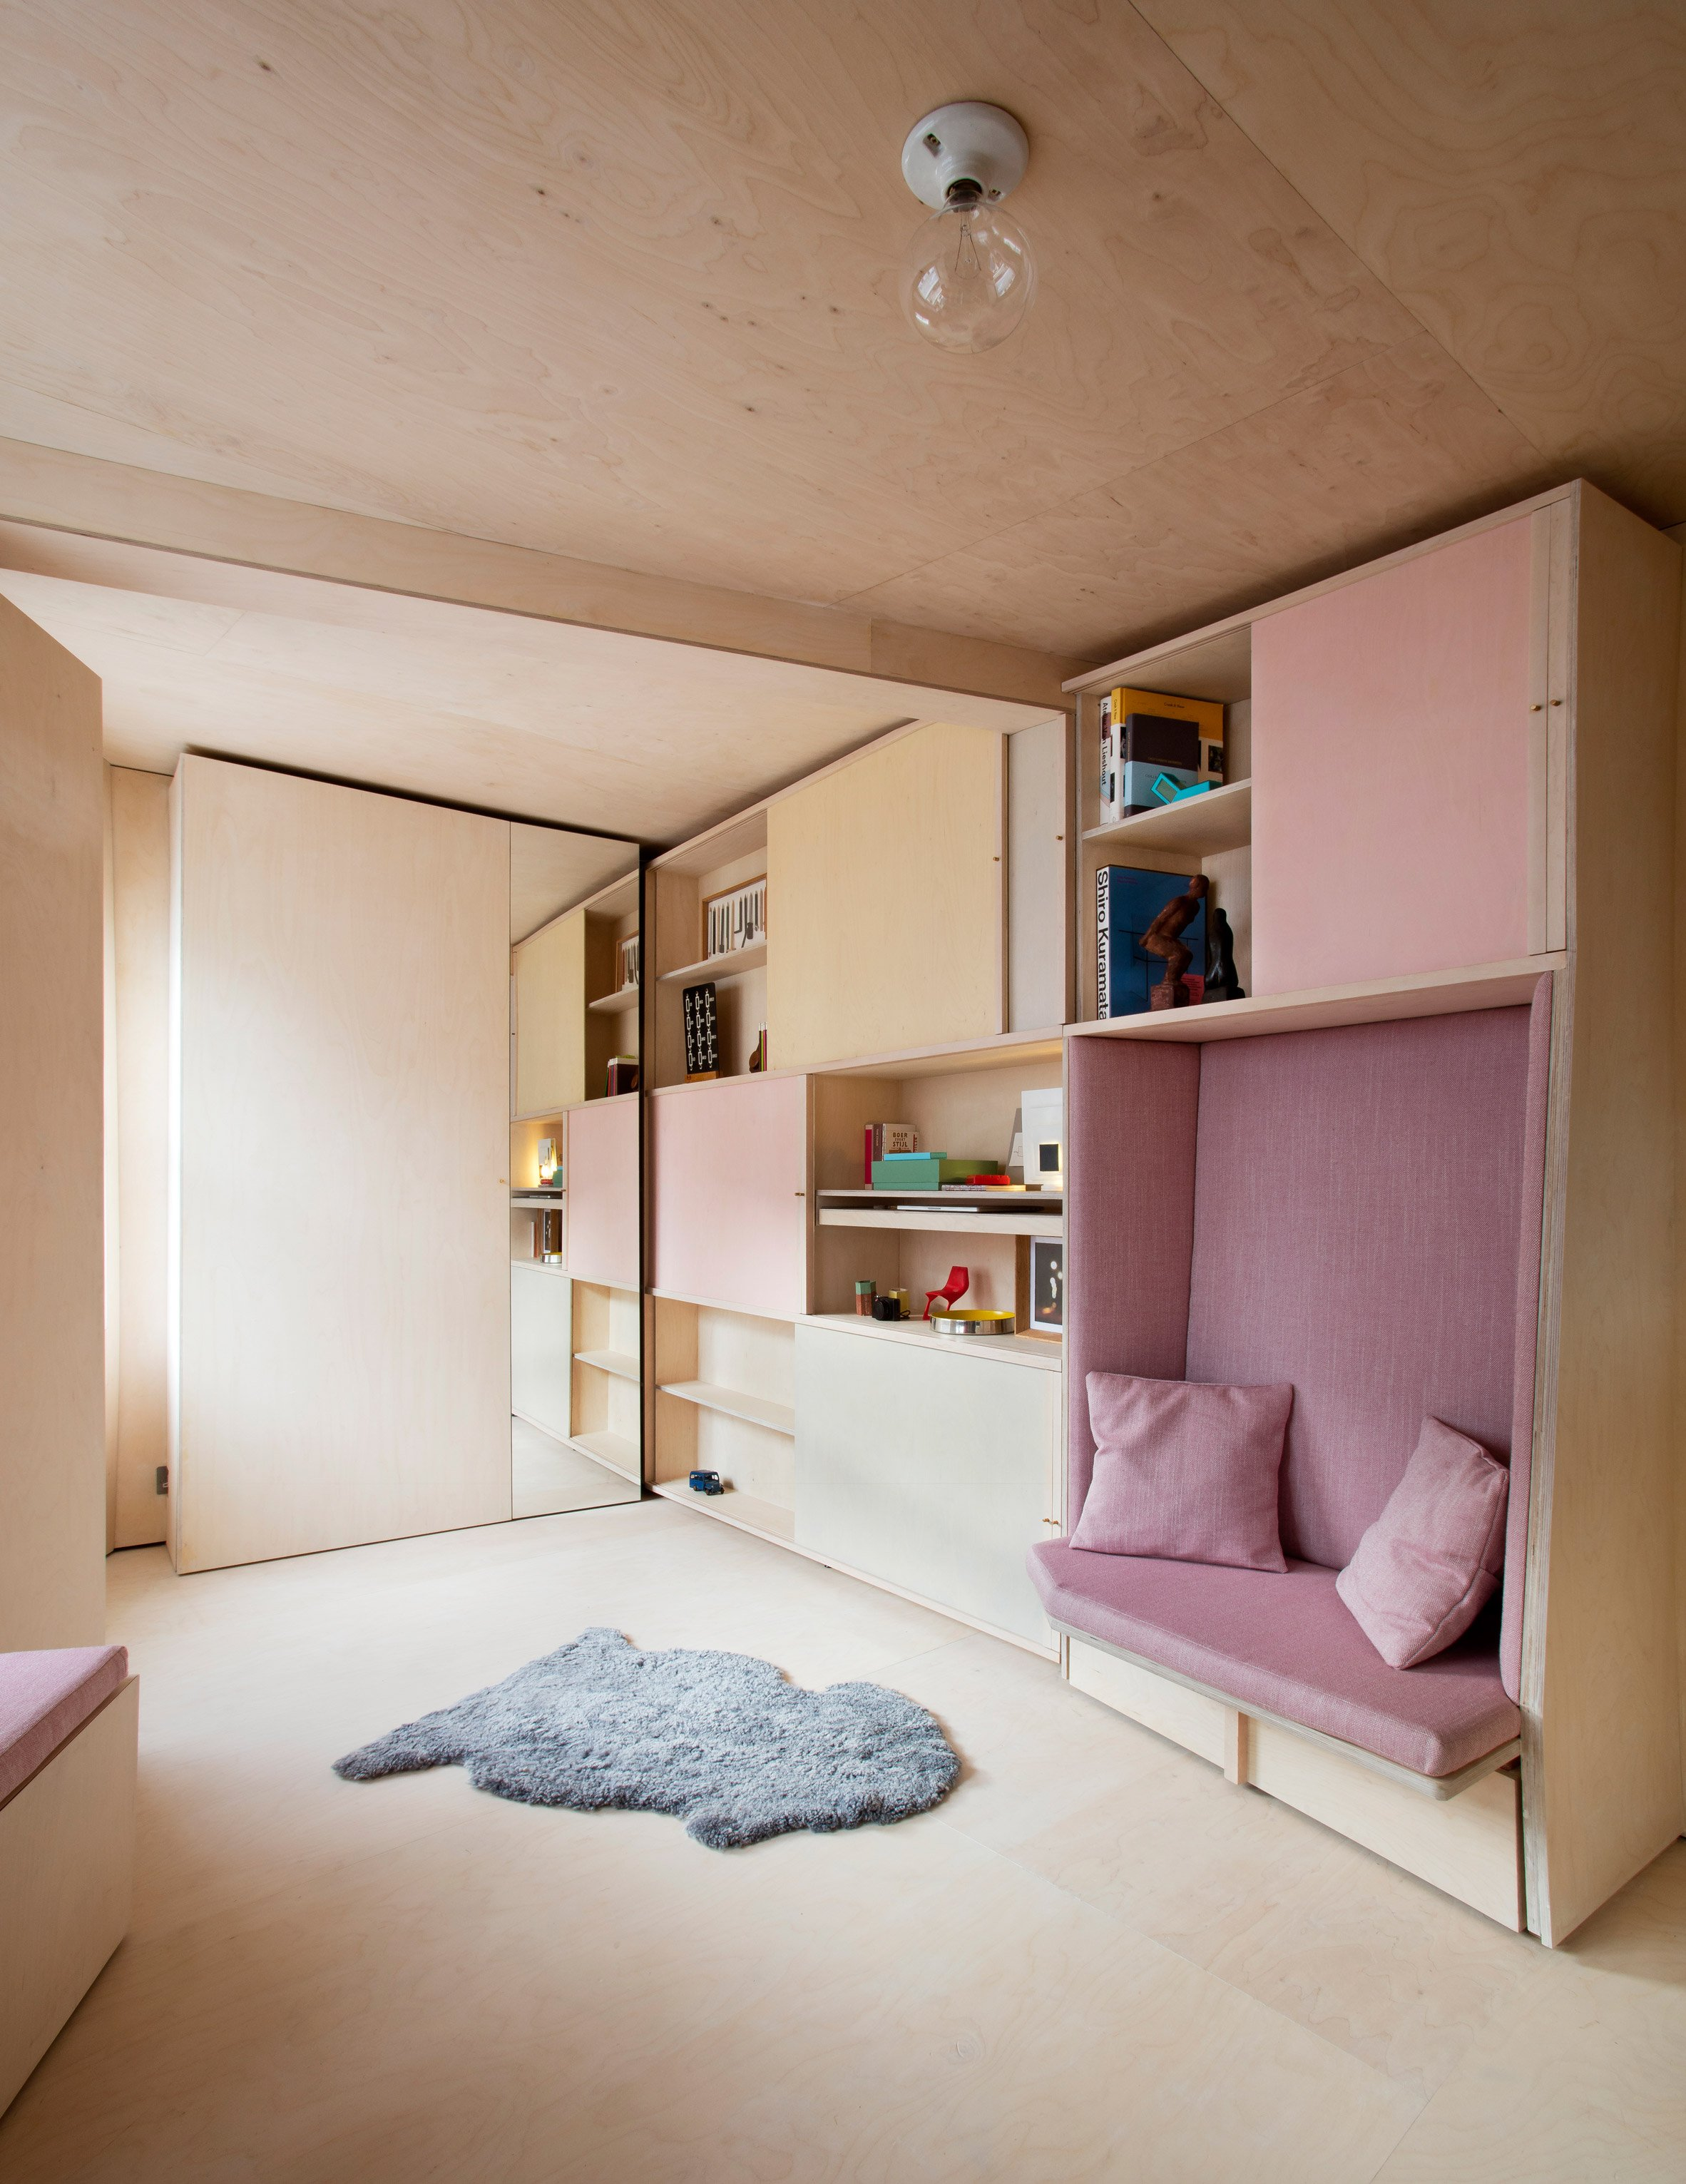 Studiomama uses sliding plywood furniture to overhaul 13-square-metre house in London